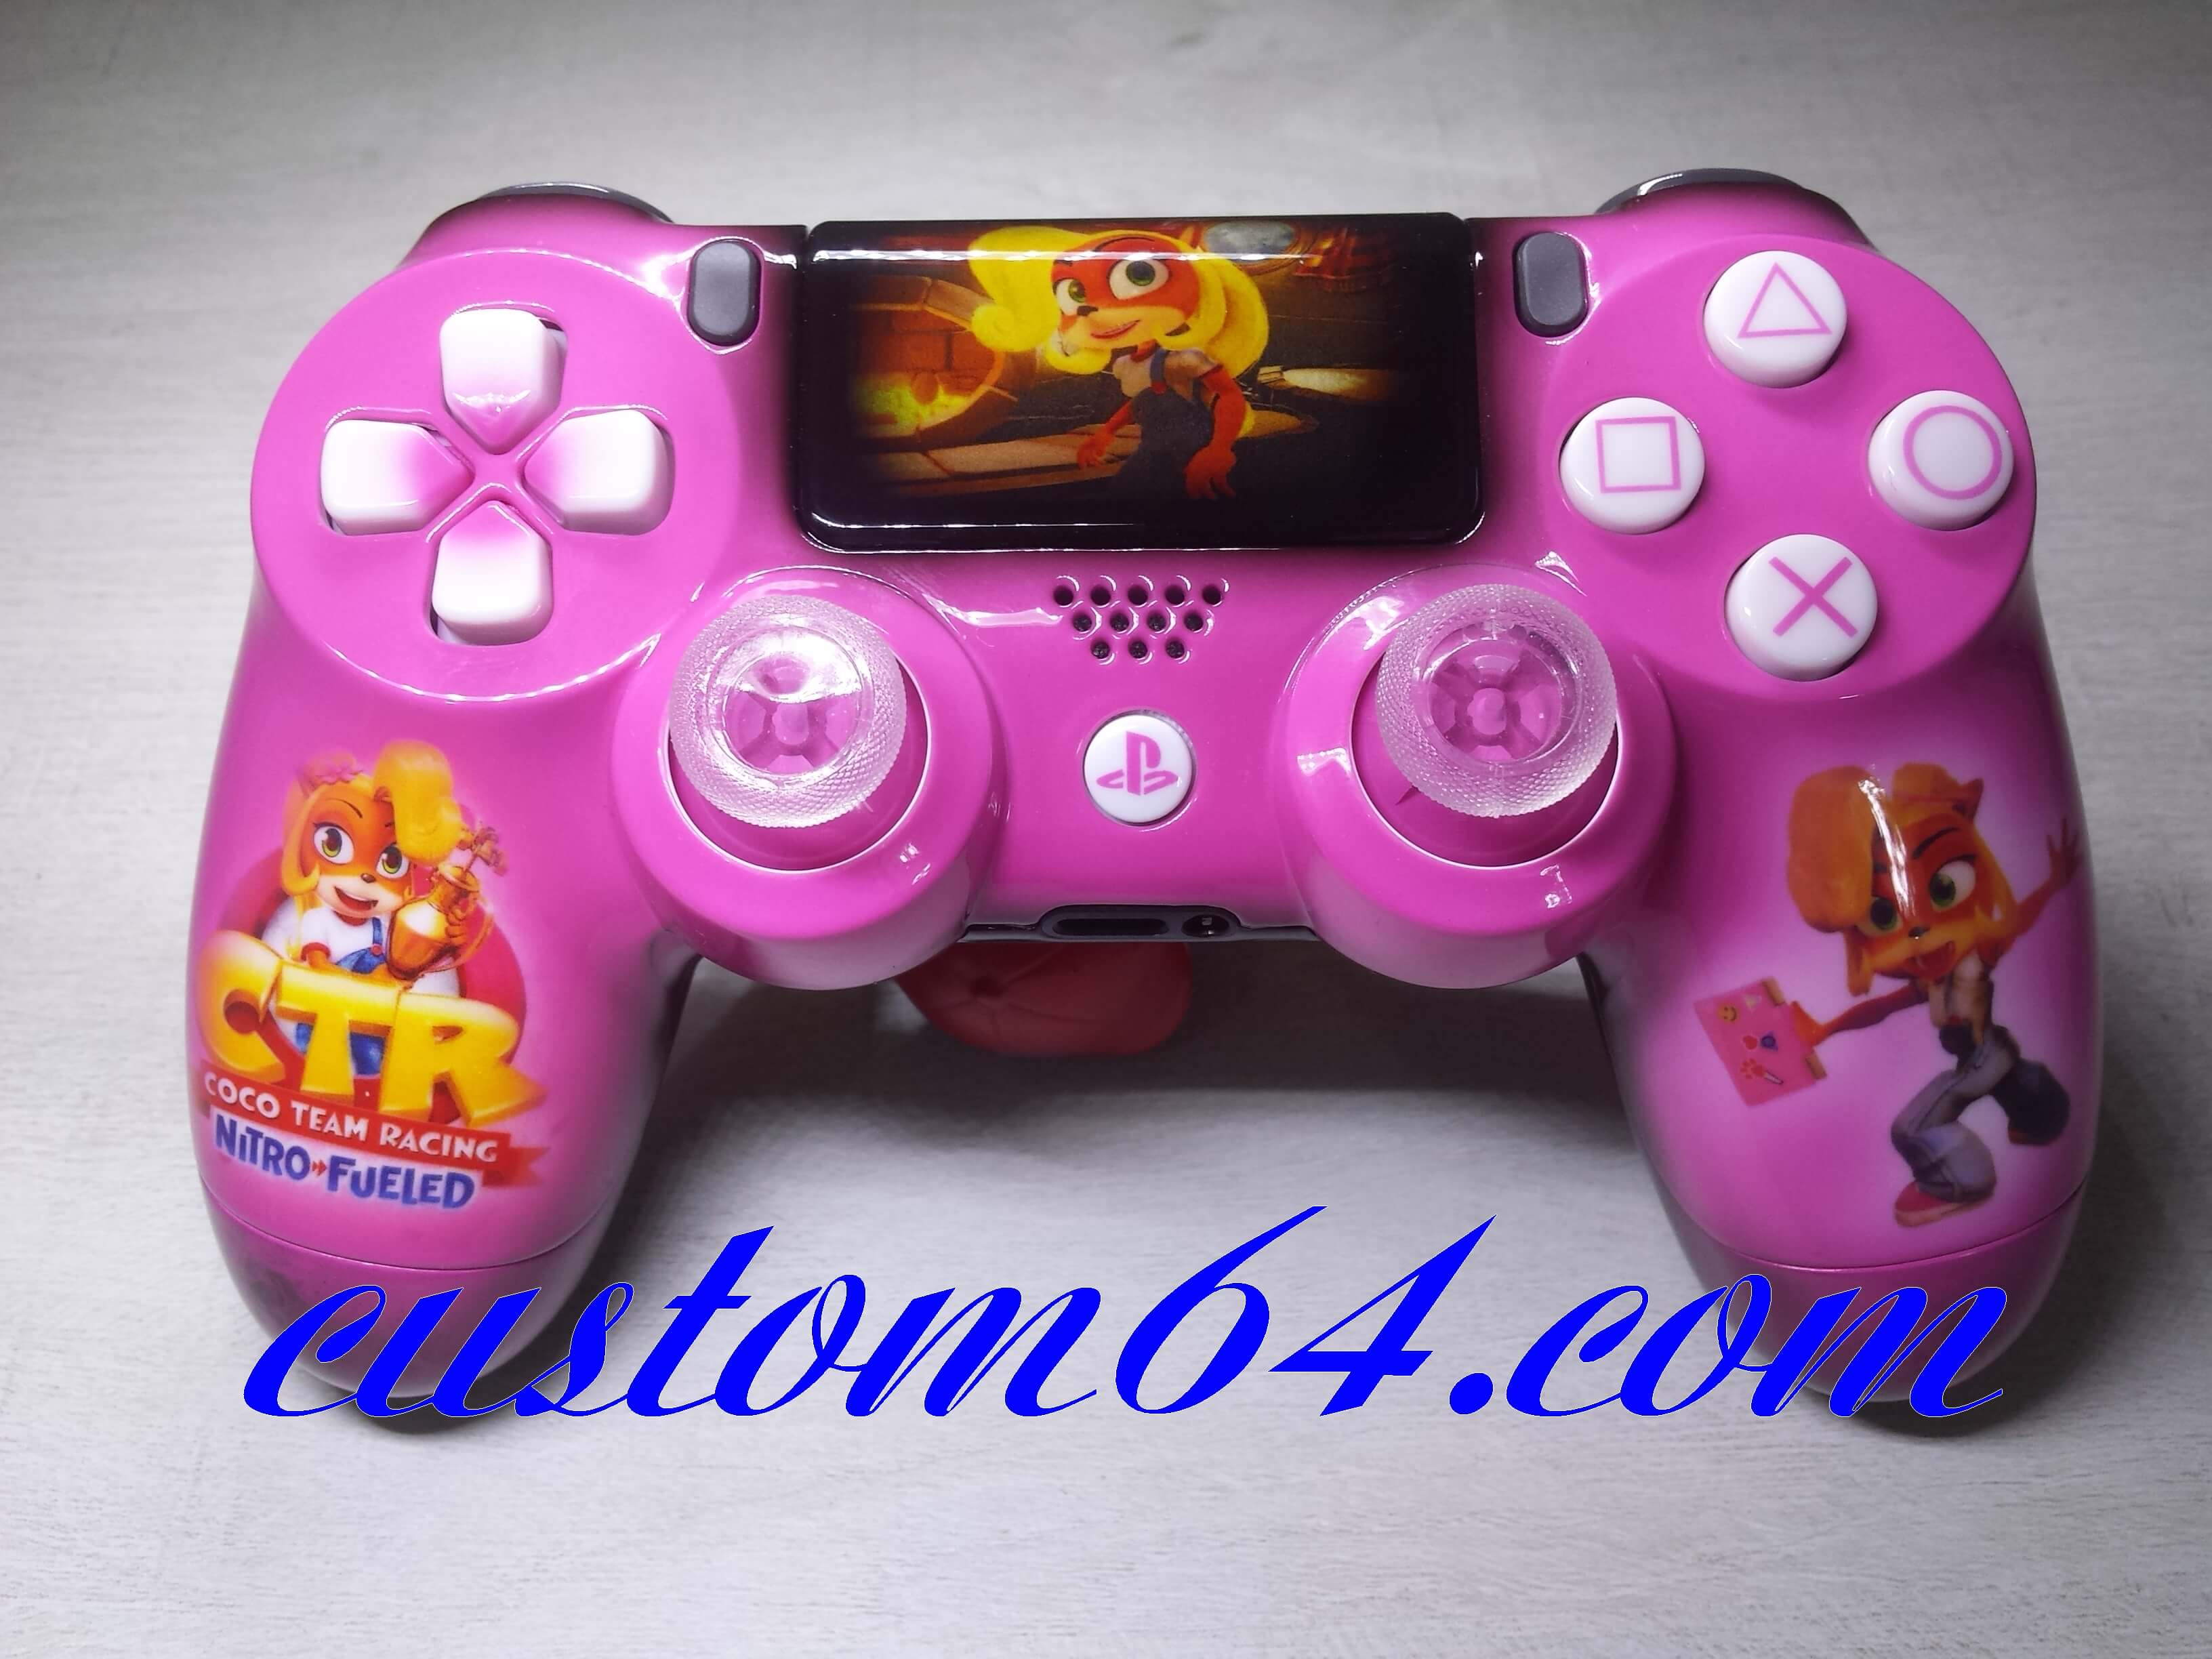 manette ps4 coco team racing